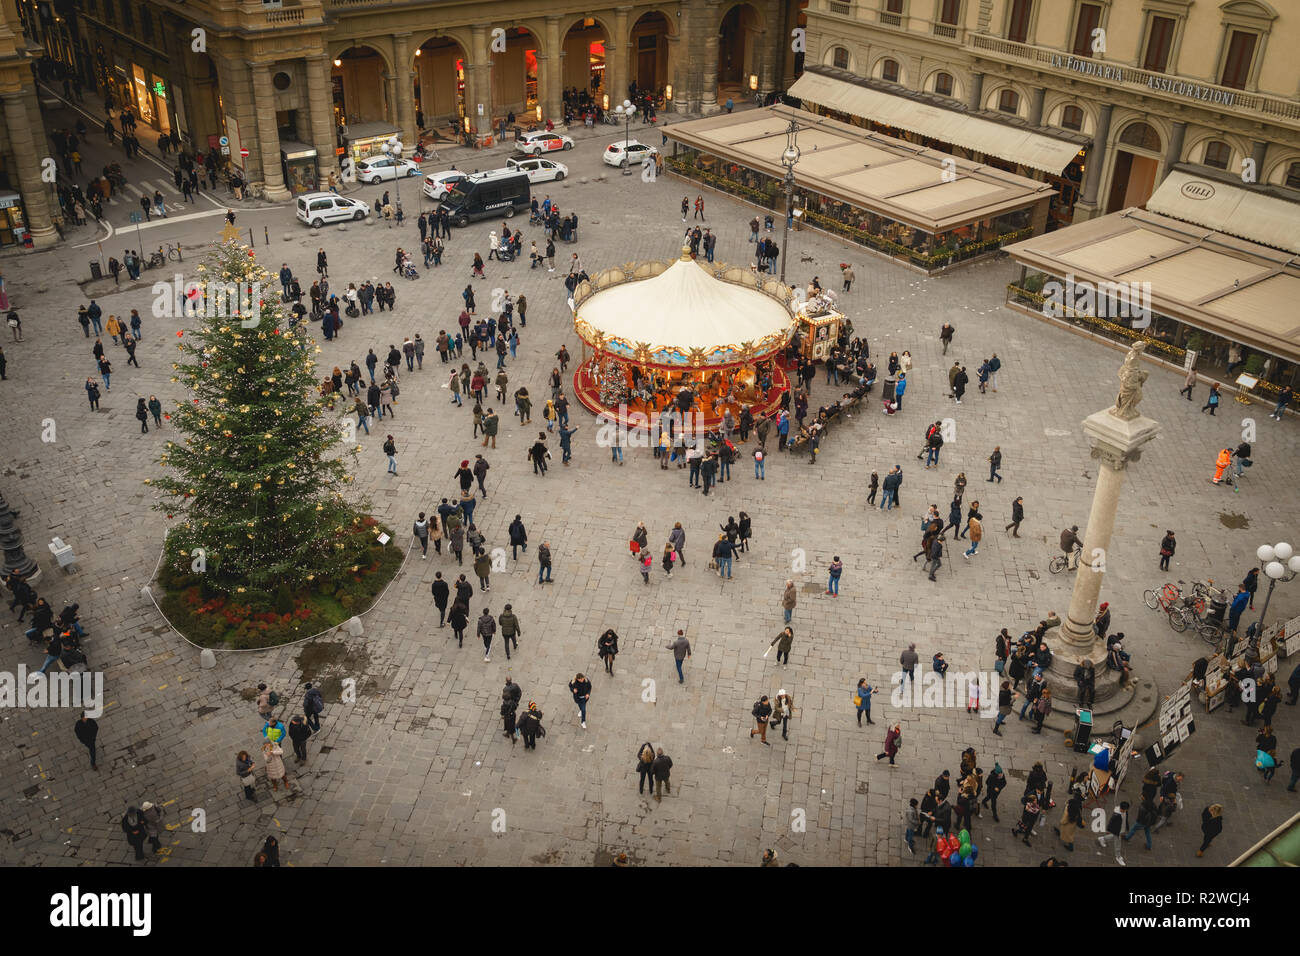 Christmas In Italy 2019.Florence Italy February 2019 Tourists In Republic